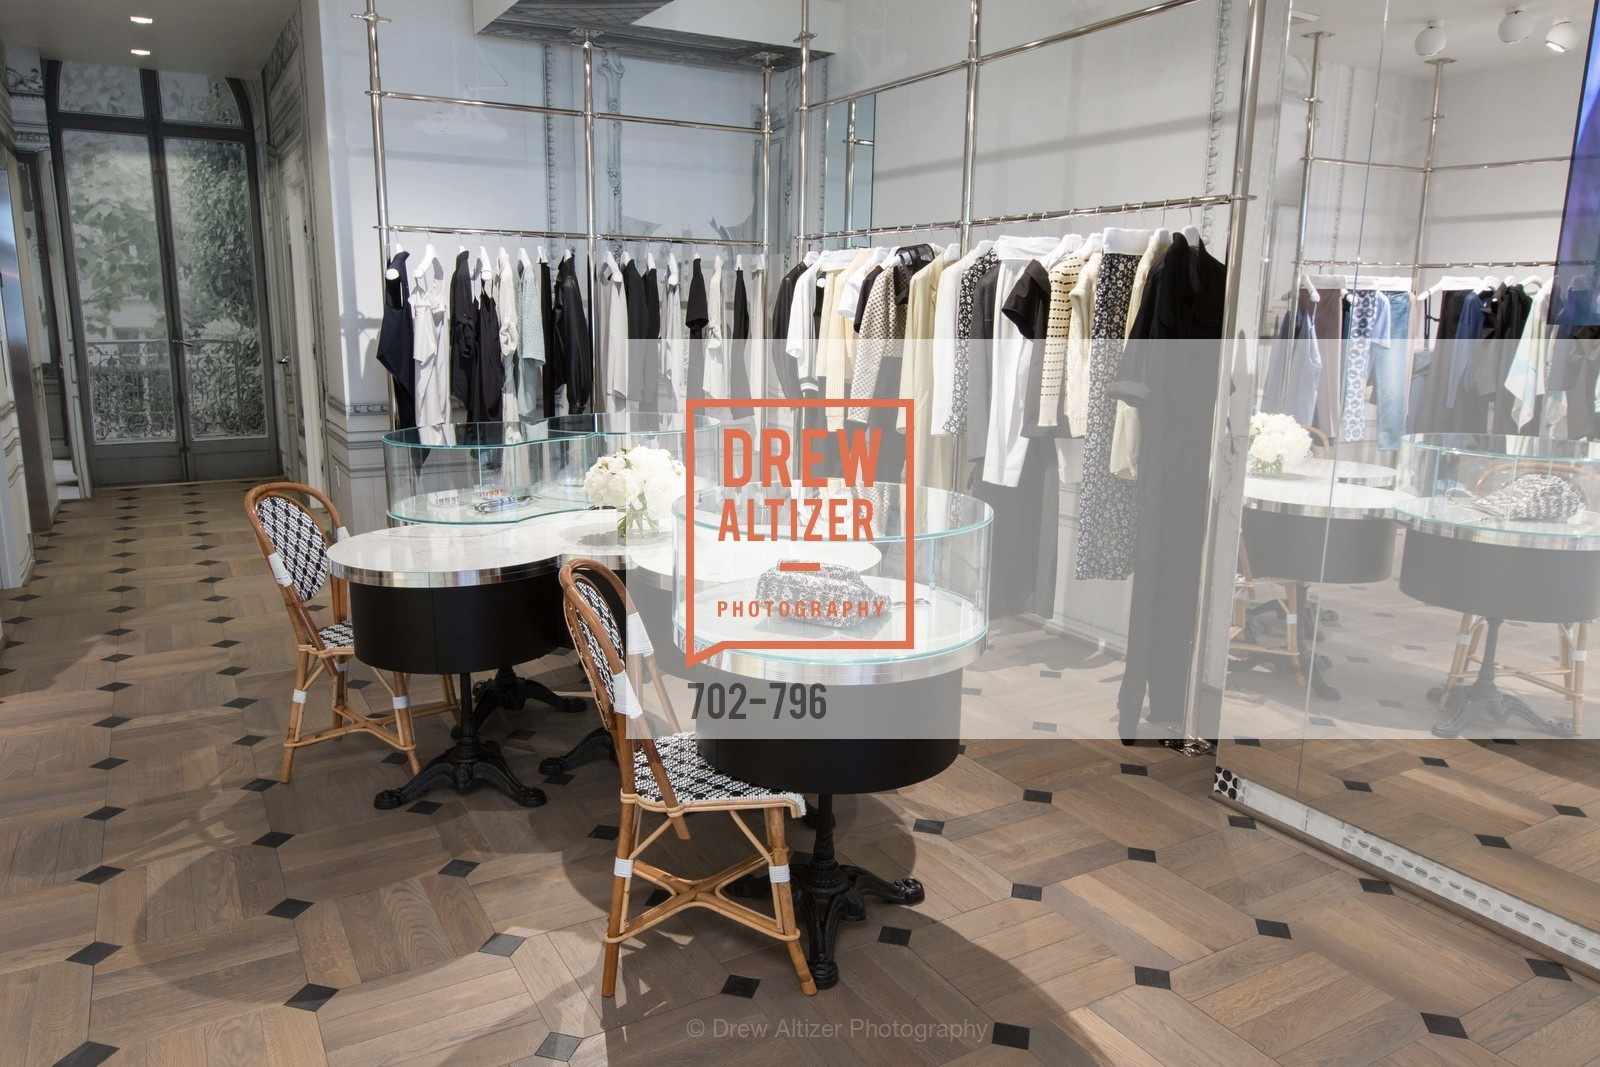 Atmosphere, MAISON MARGIELA San Francisco Boutique Grand Opening Event, US, April 23rd, 2015,Drew Altizer, Drew Altizer Photography, full-service agency, private events, San Francisco photographer, photographer california